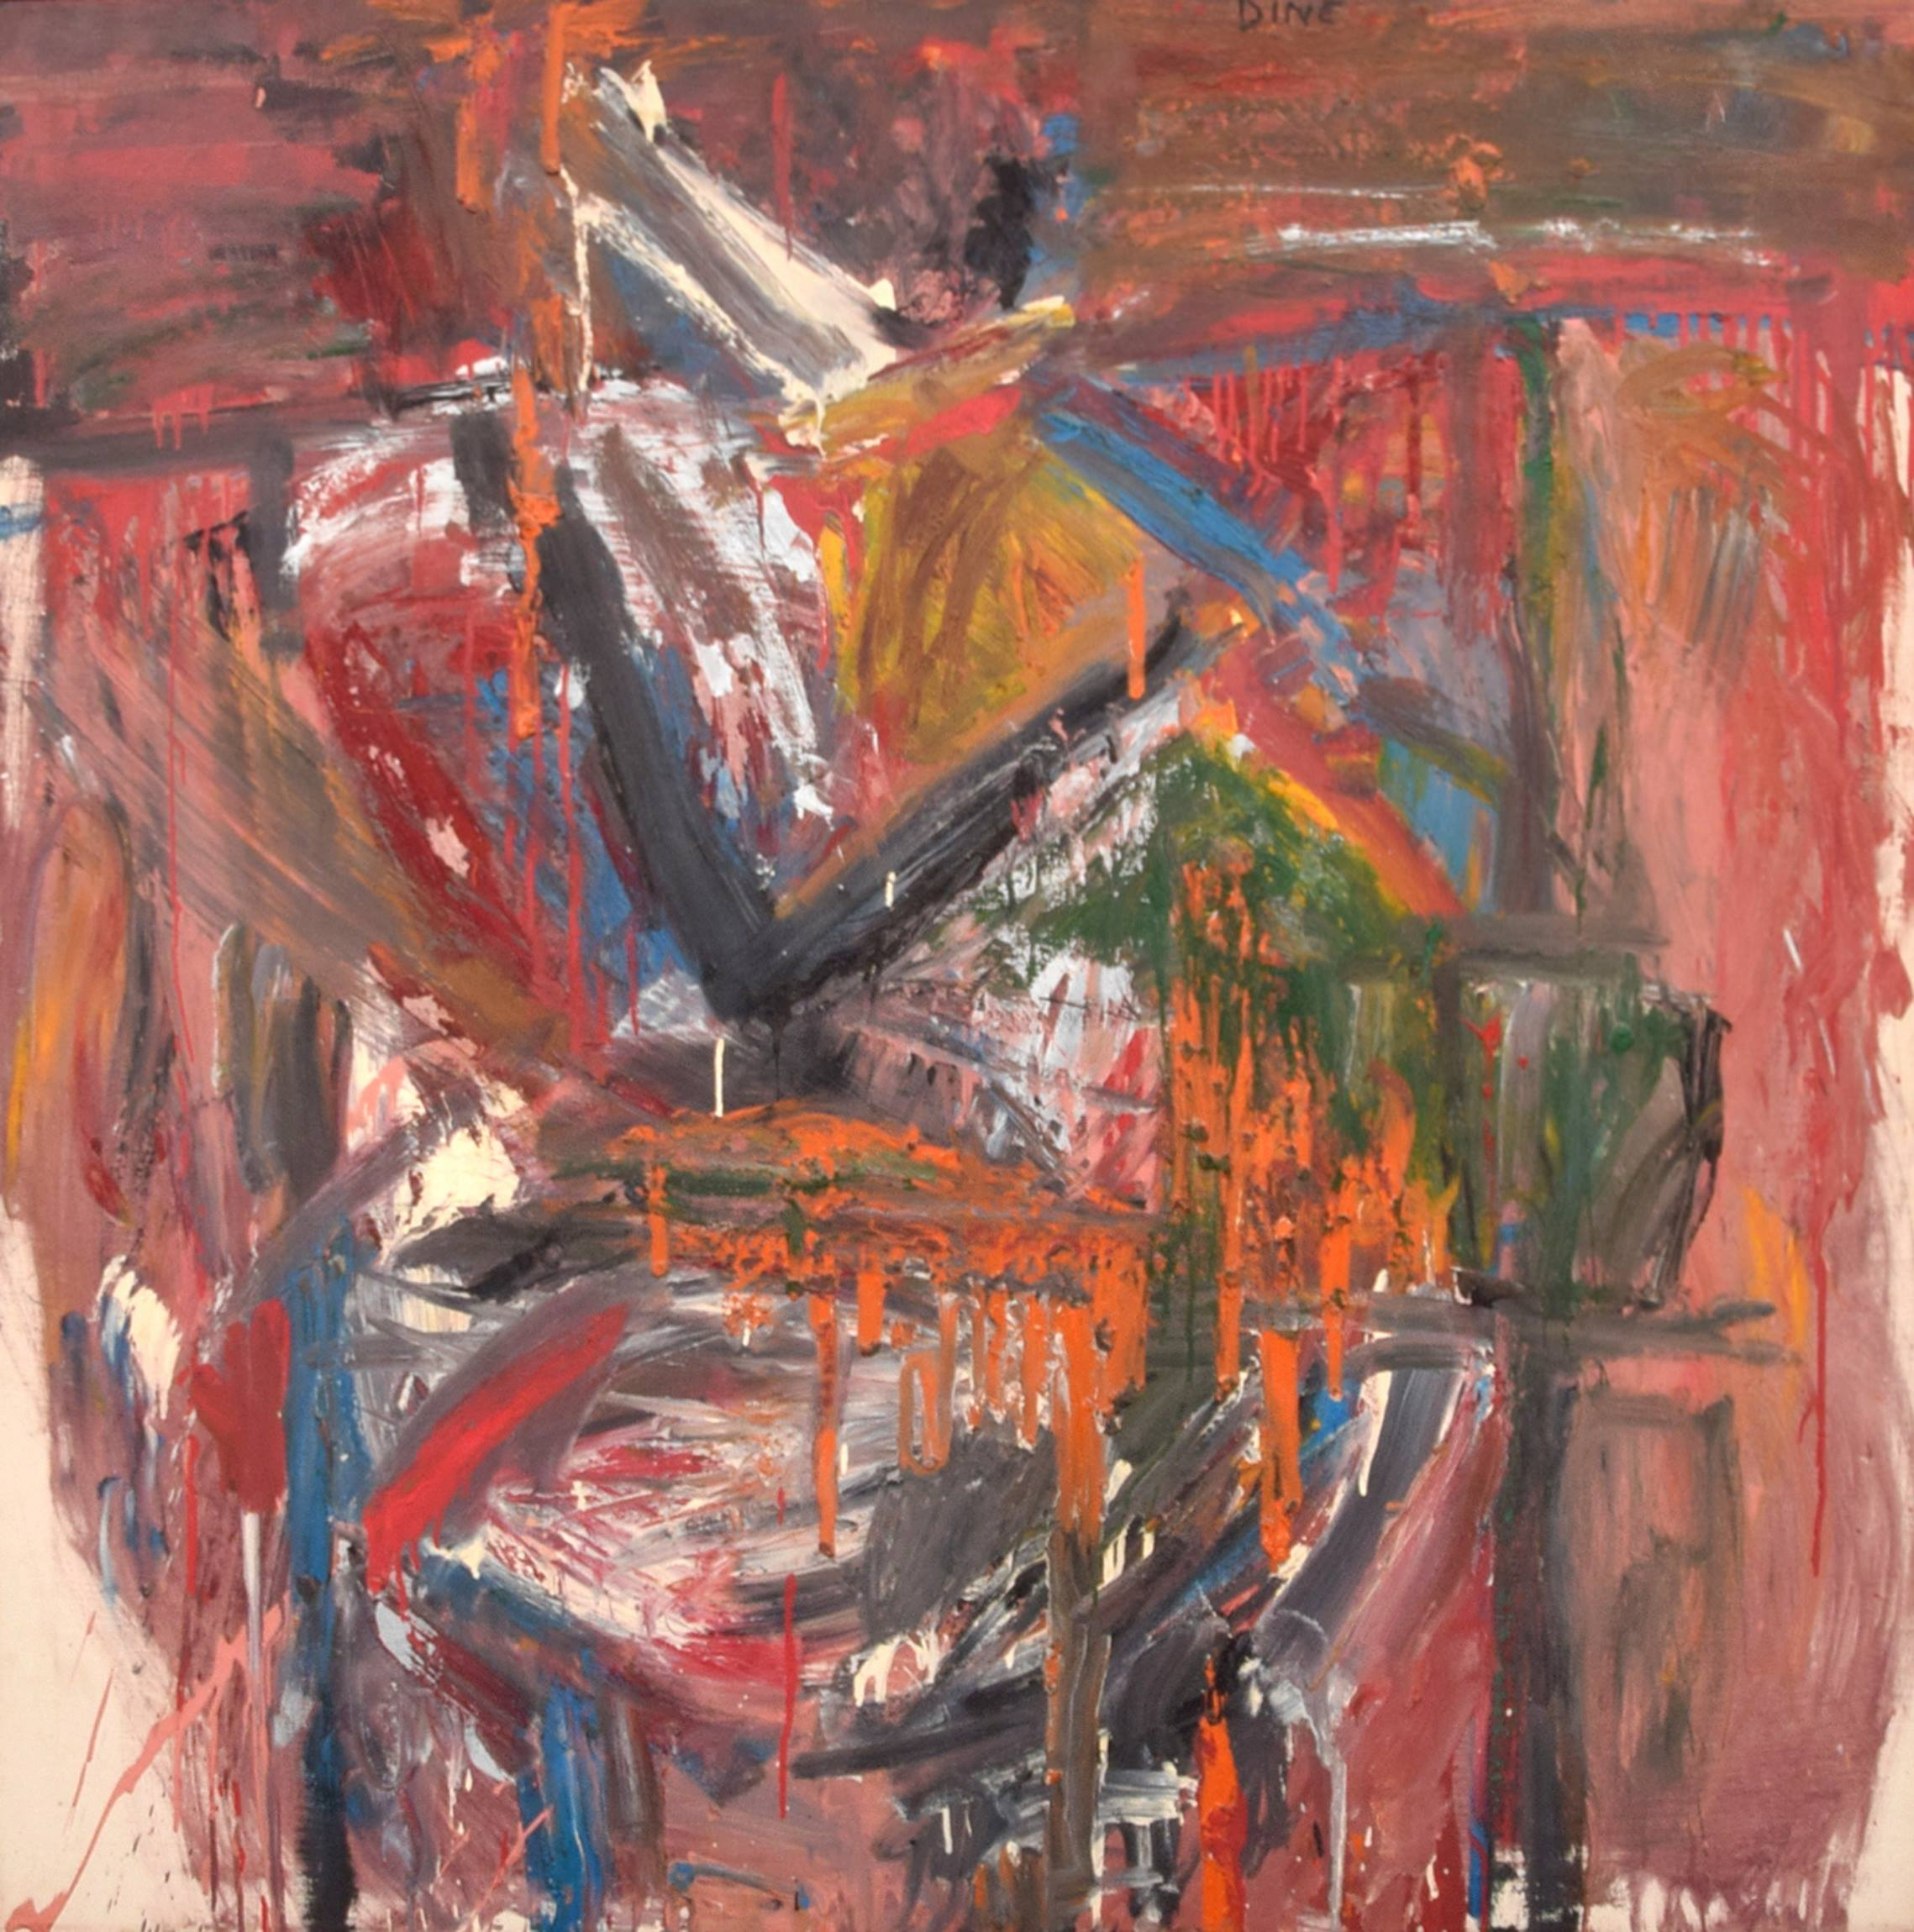 Palm Beach Modern presents boutique selections of art, design in Feb. 20 auction